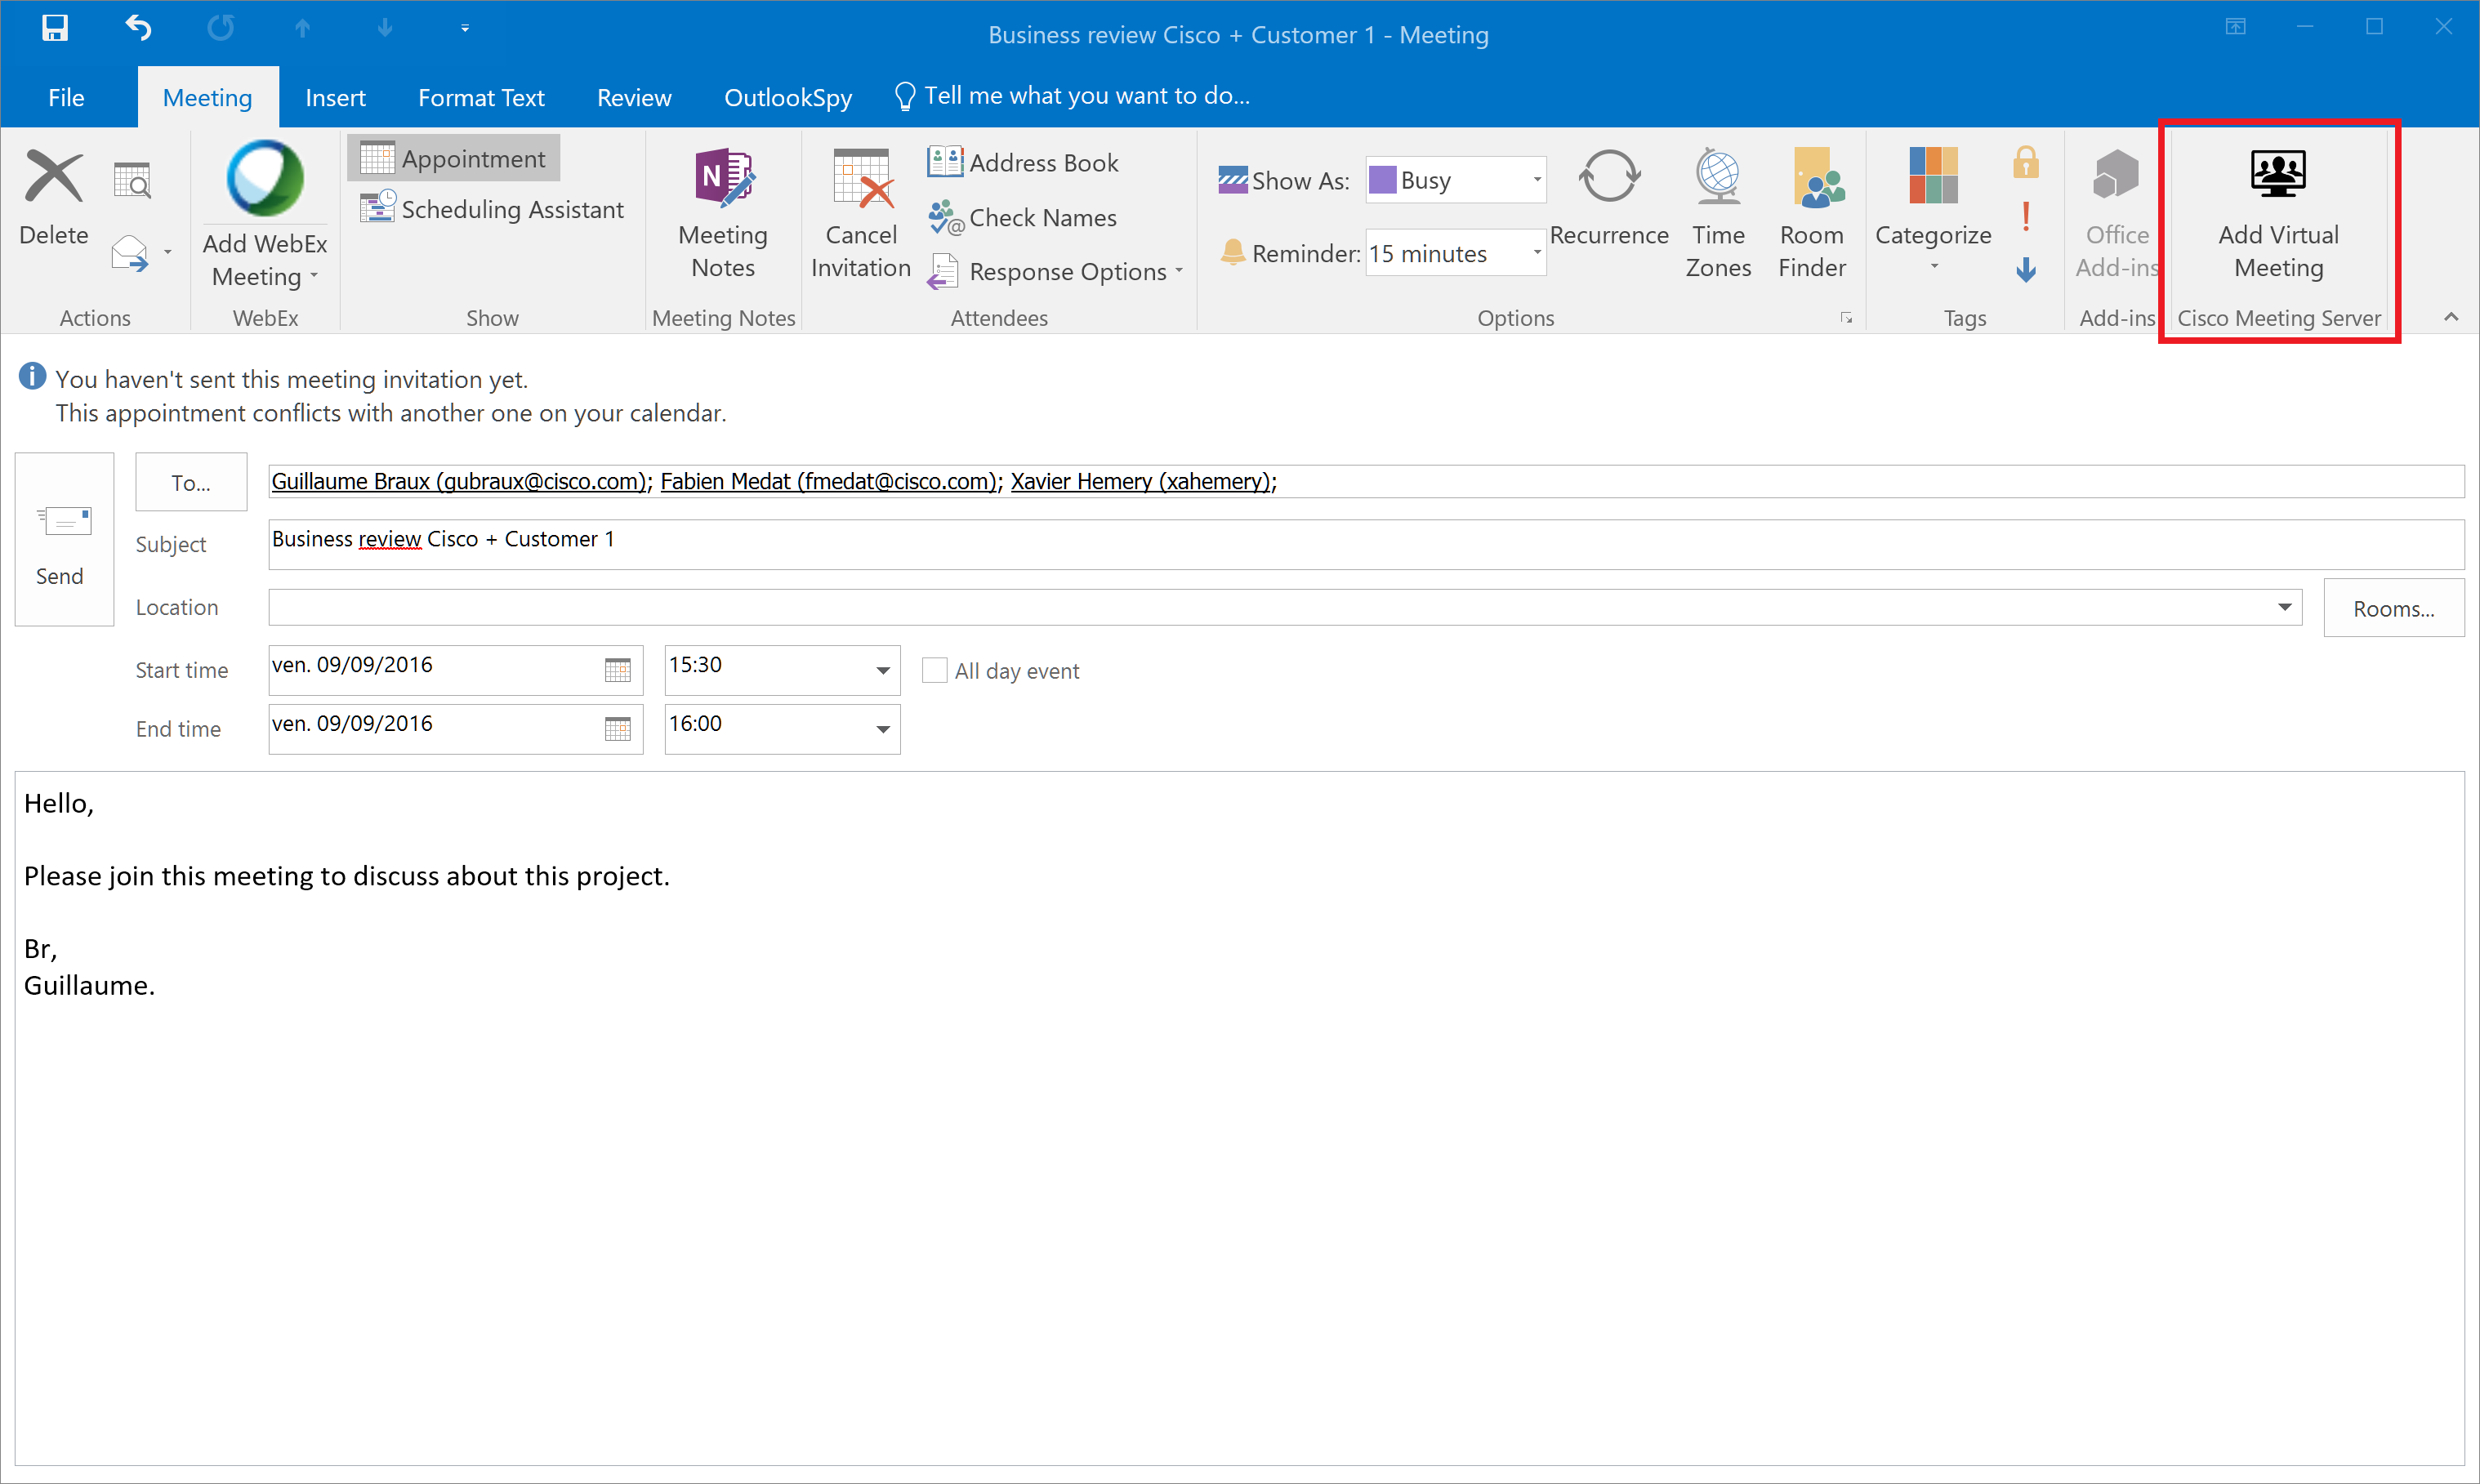 GitHub gbrauxCMSOutlookAddin Outlook 20132016 AddIn for